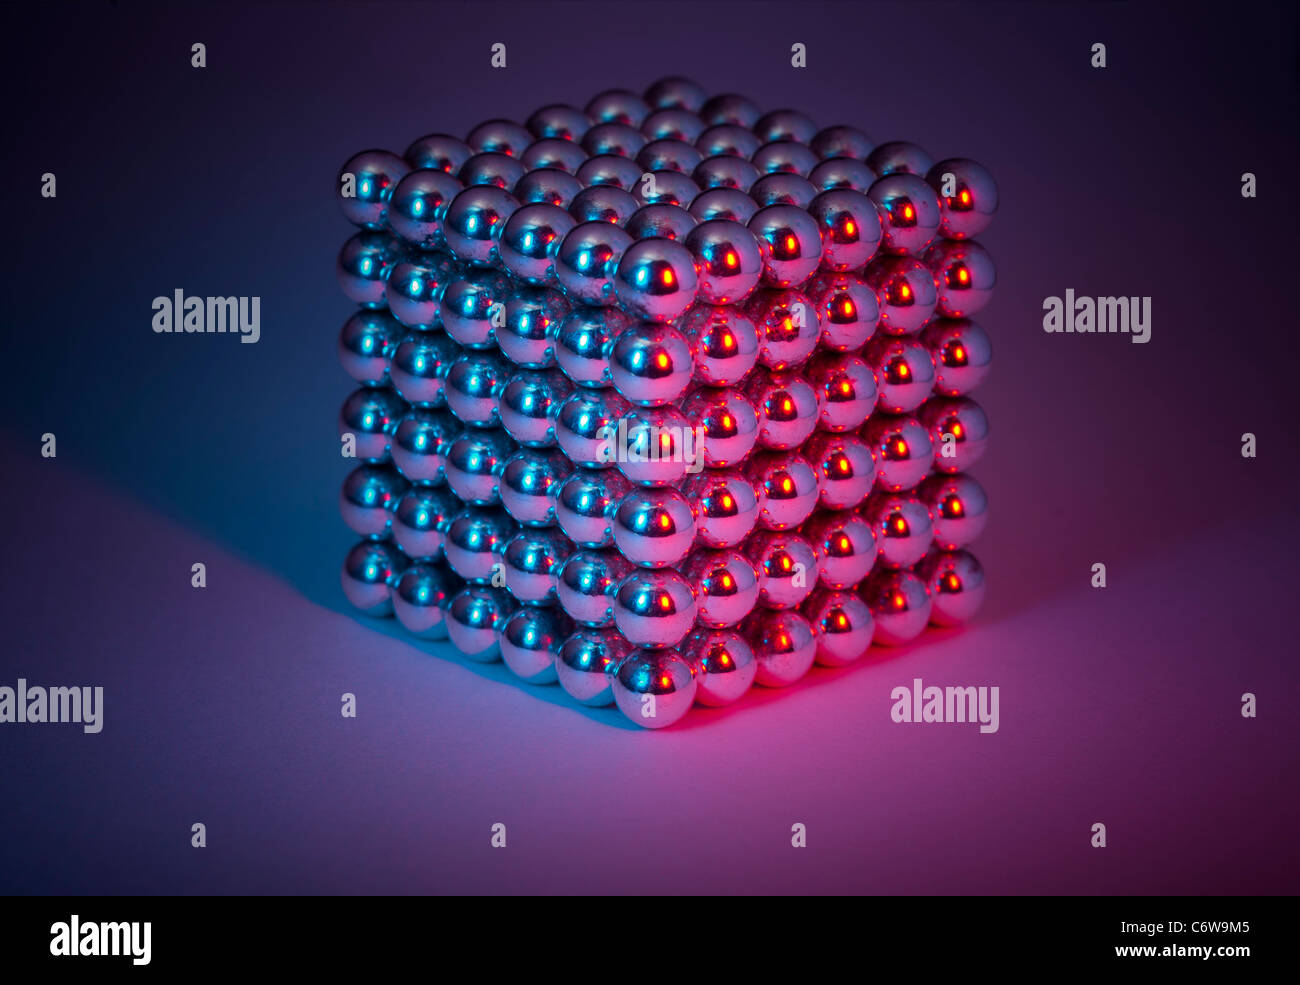 A shot in the studio of a piled up steel ball cube.  Billes d'acier empilées pour former un cube. Prise - Stock Image